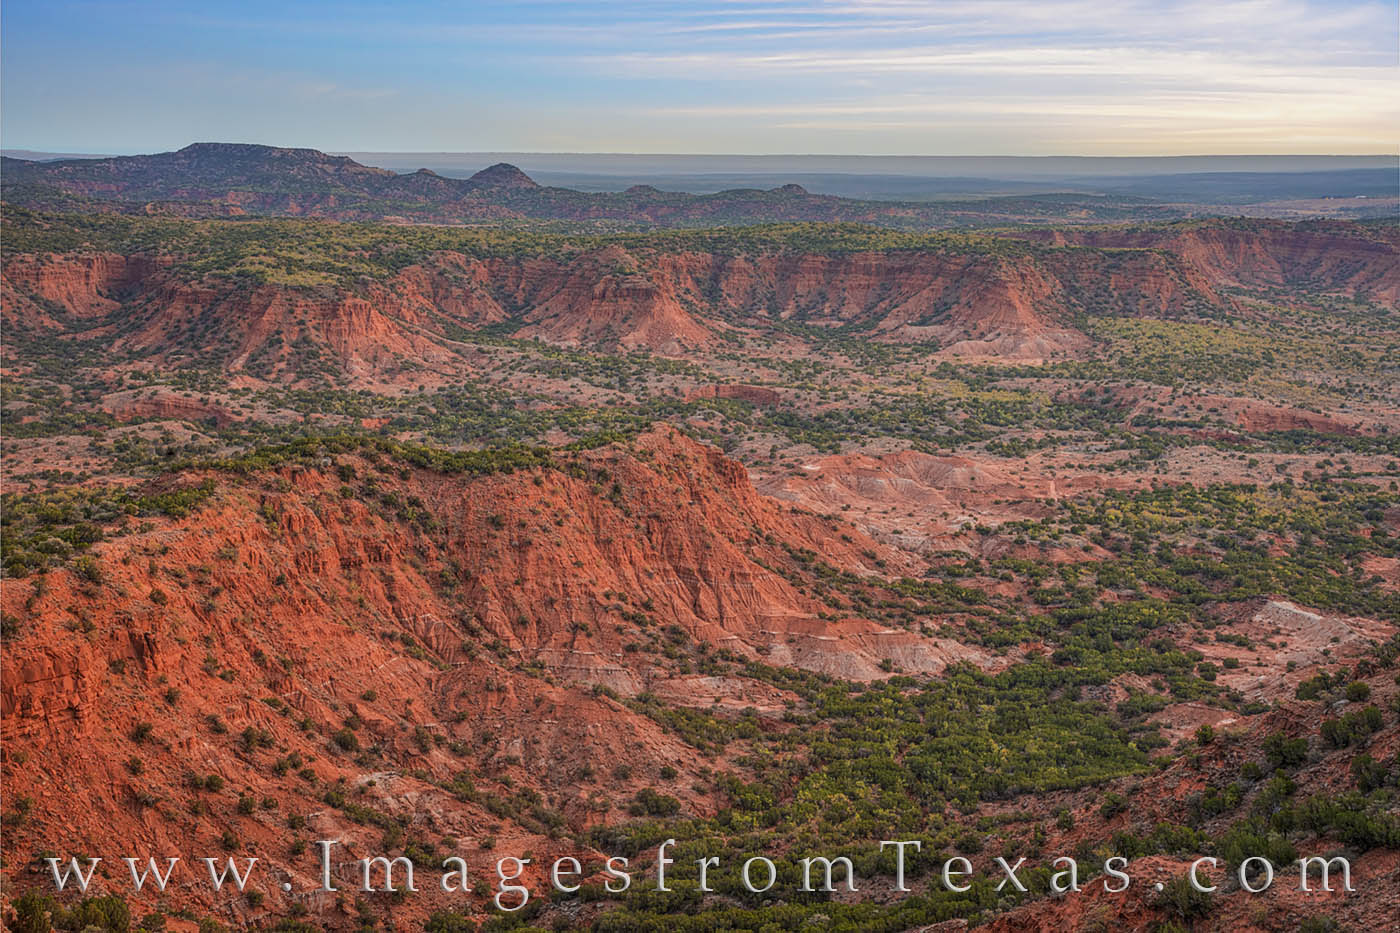 From 600 feet above the valley floor, this west Texas landscape shows the breathtaking view from the Haynes Ridge Overlook. The...